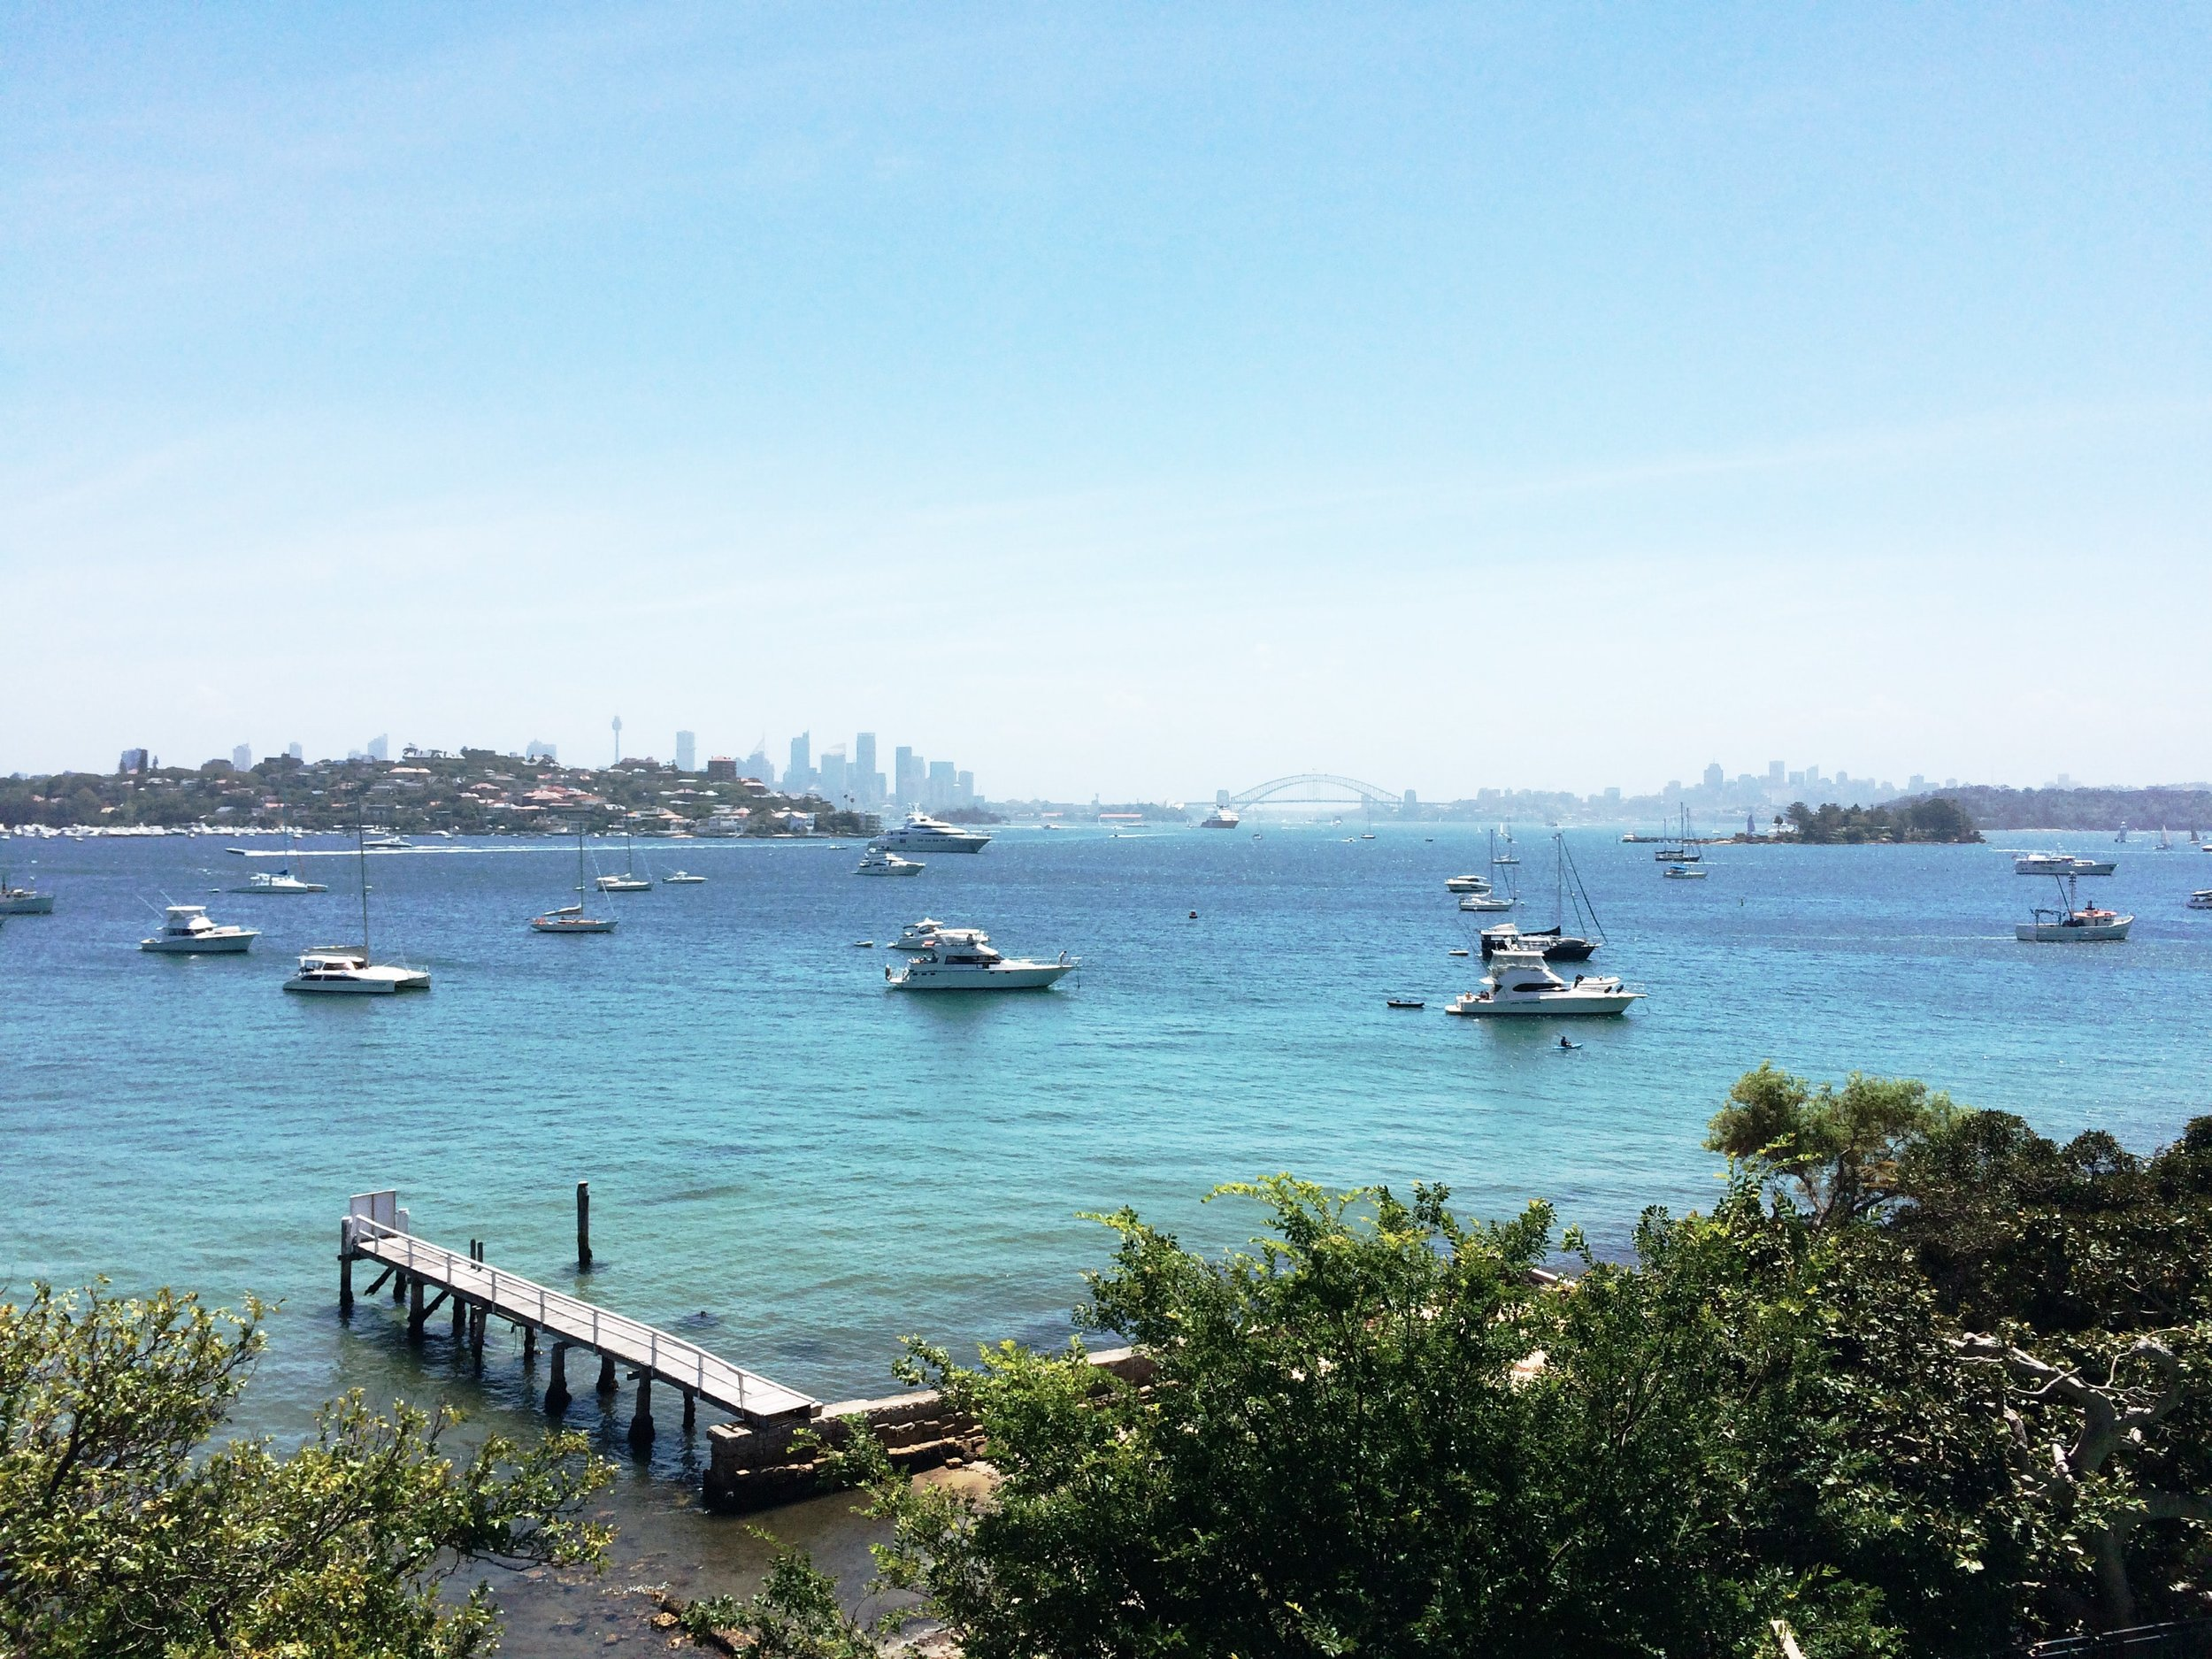 View of Sydney from Vaucluse